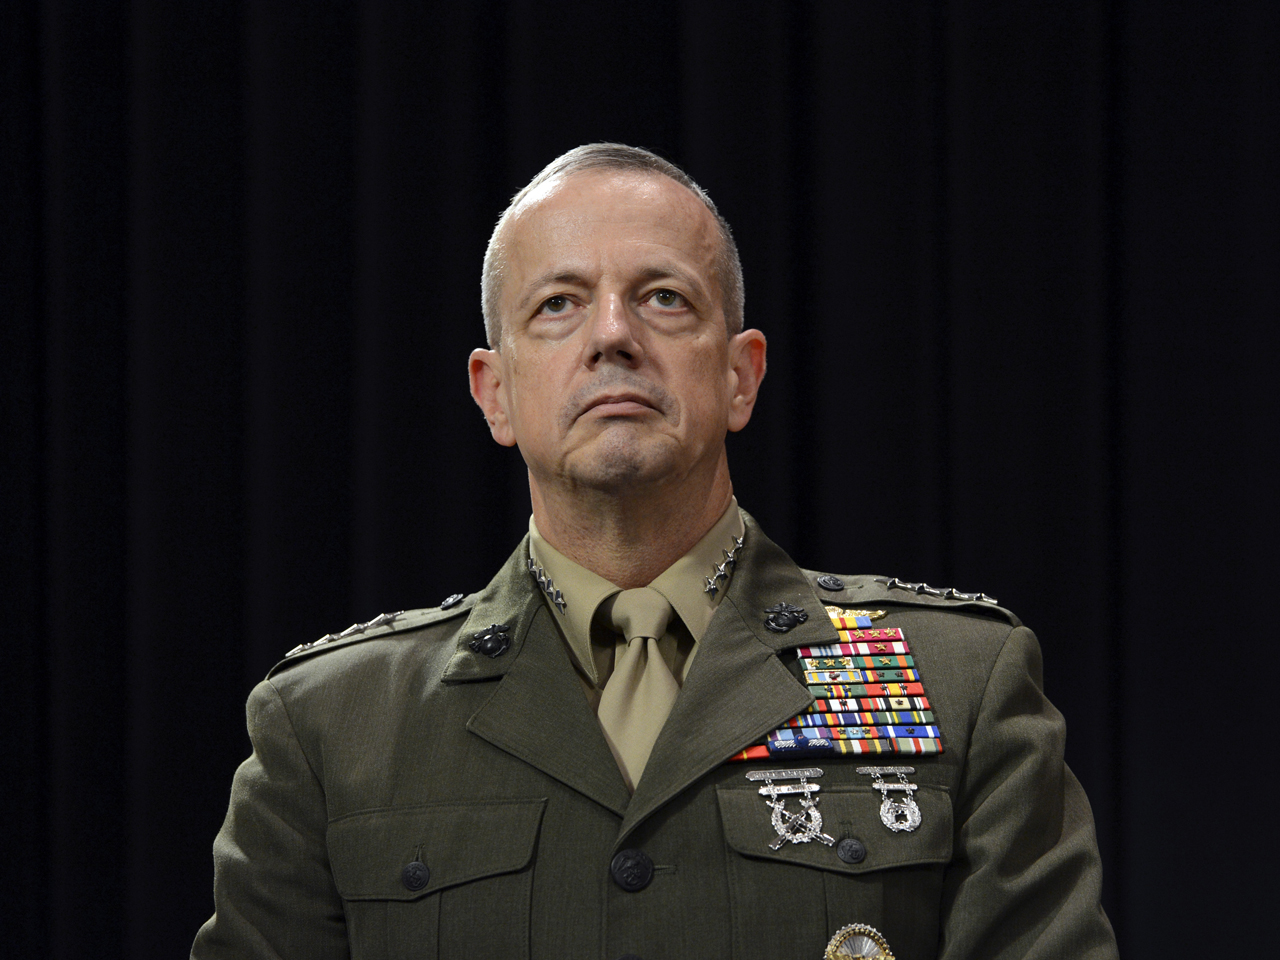 Politics And Defense Budget >> More than 100 generals sign letter warning against budget cuts - CBS News